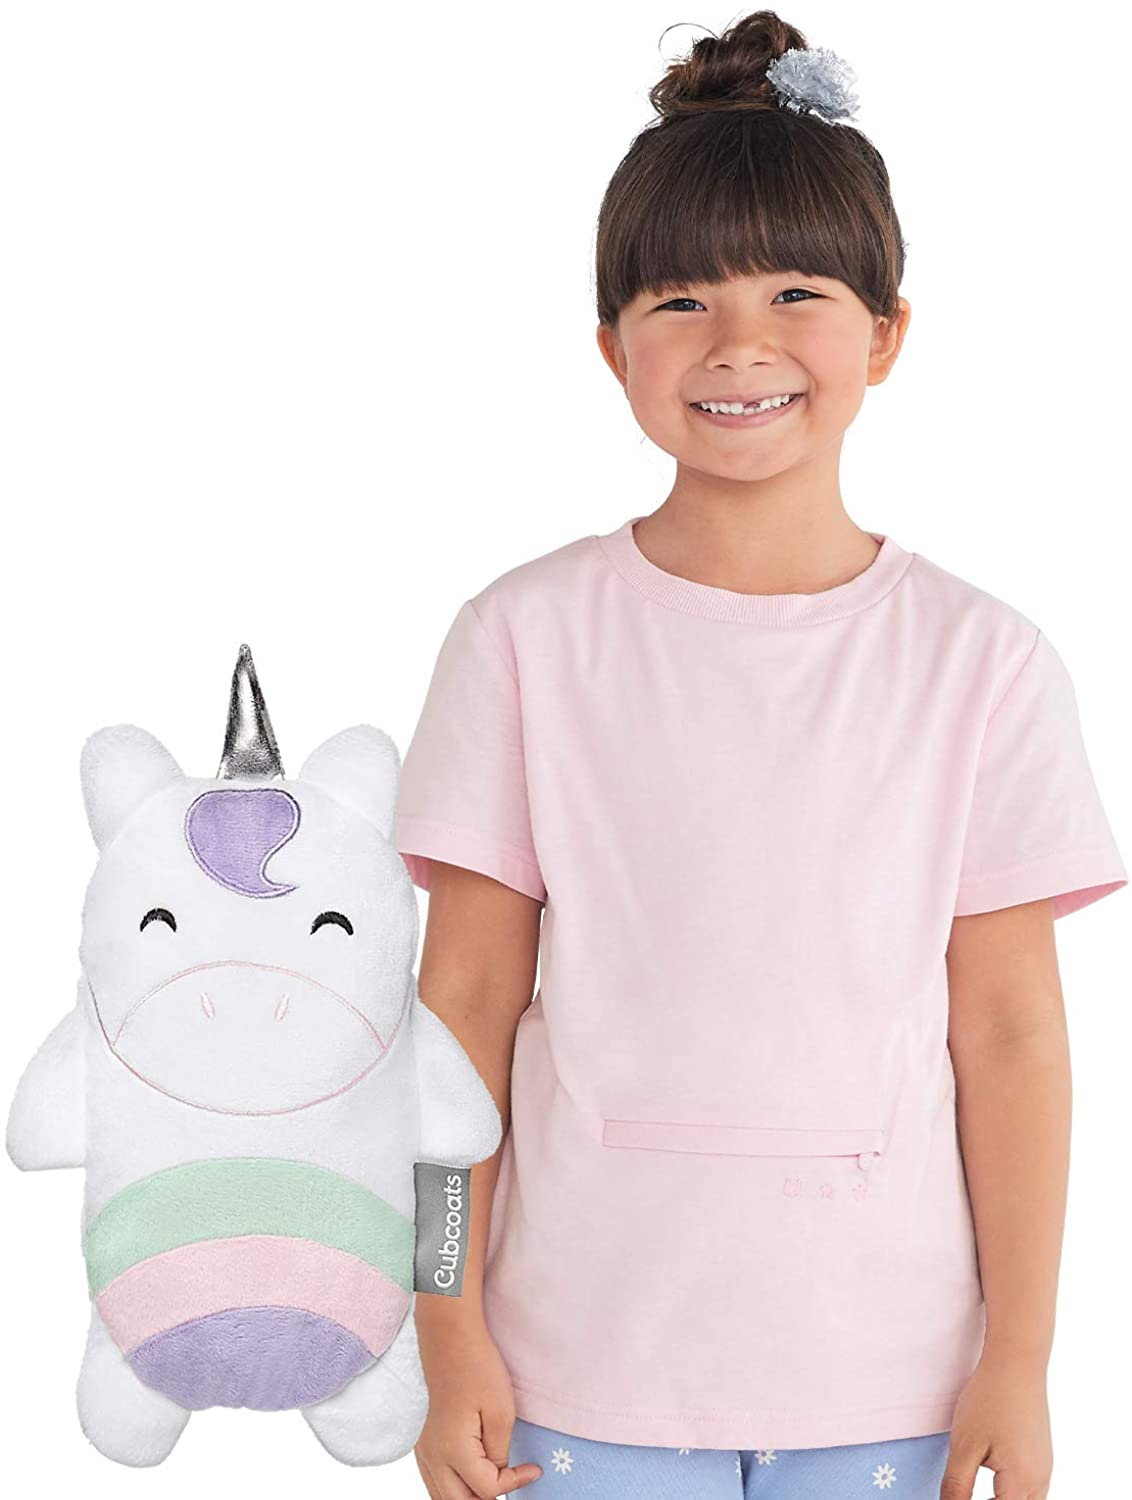 Uki The Unicorn Costume T-shirt and Plushie For Kids